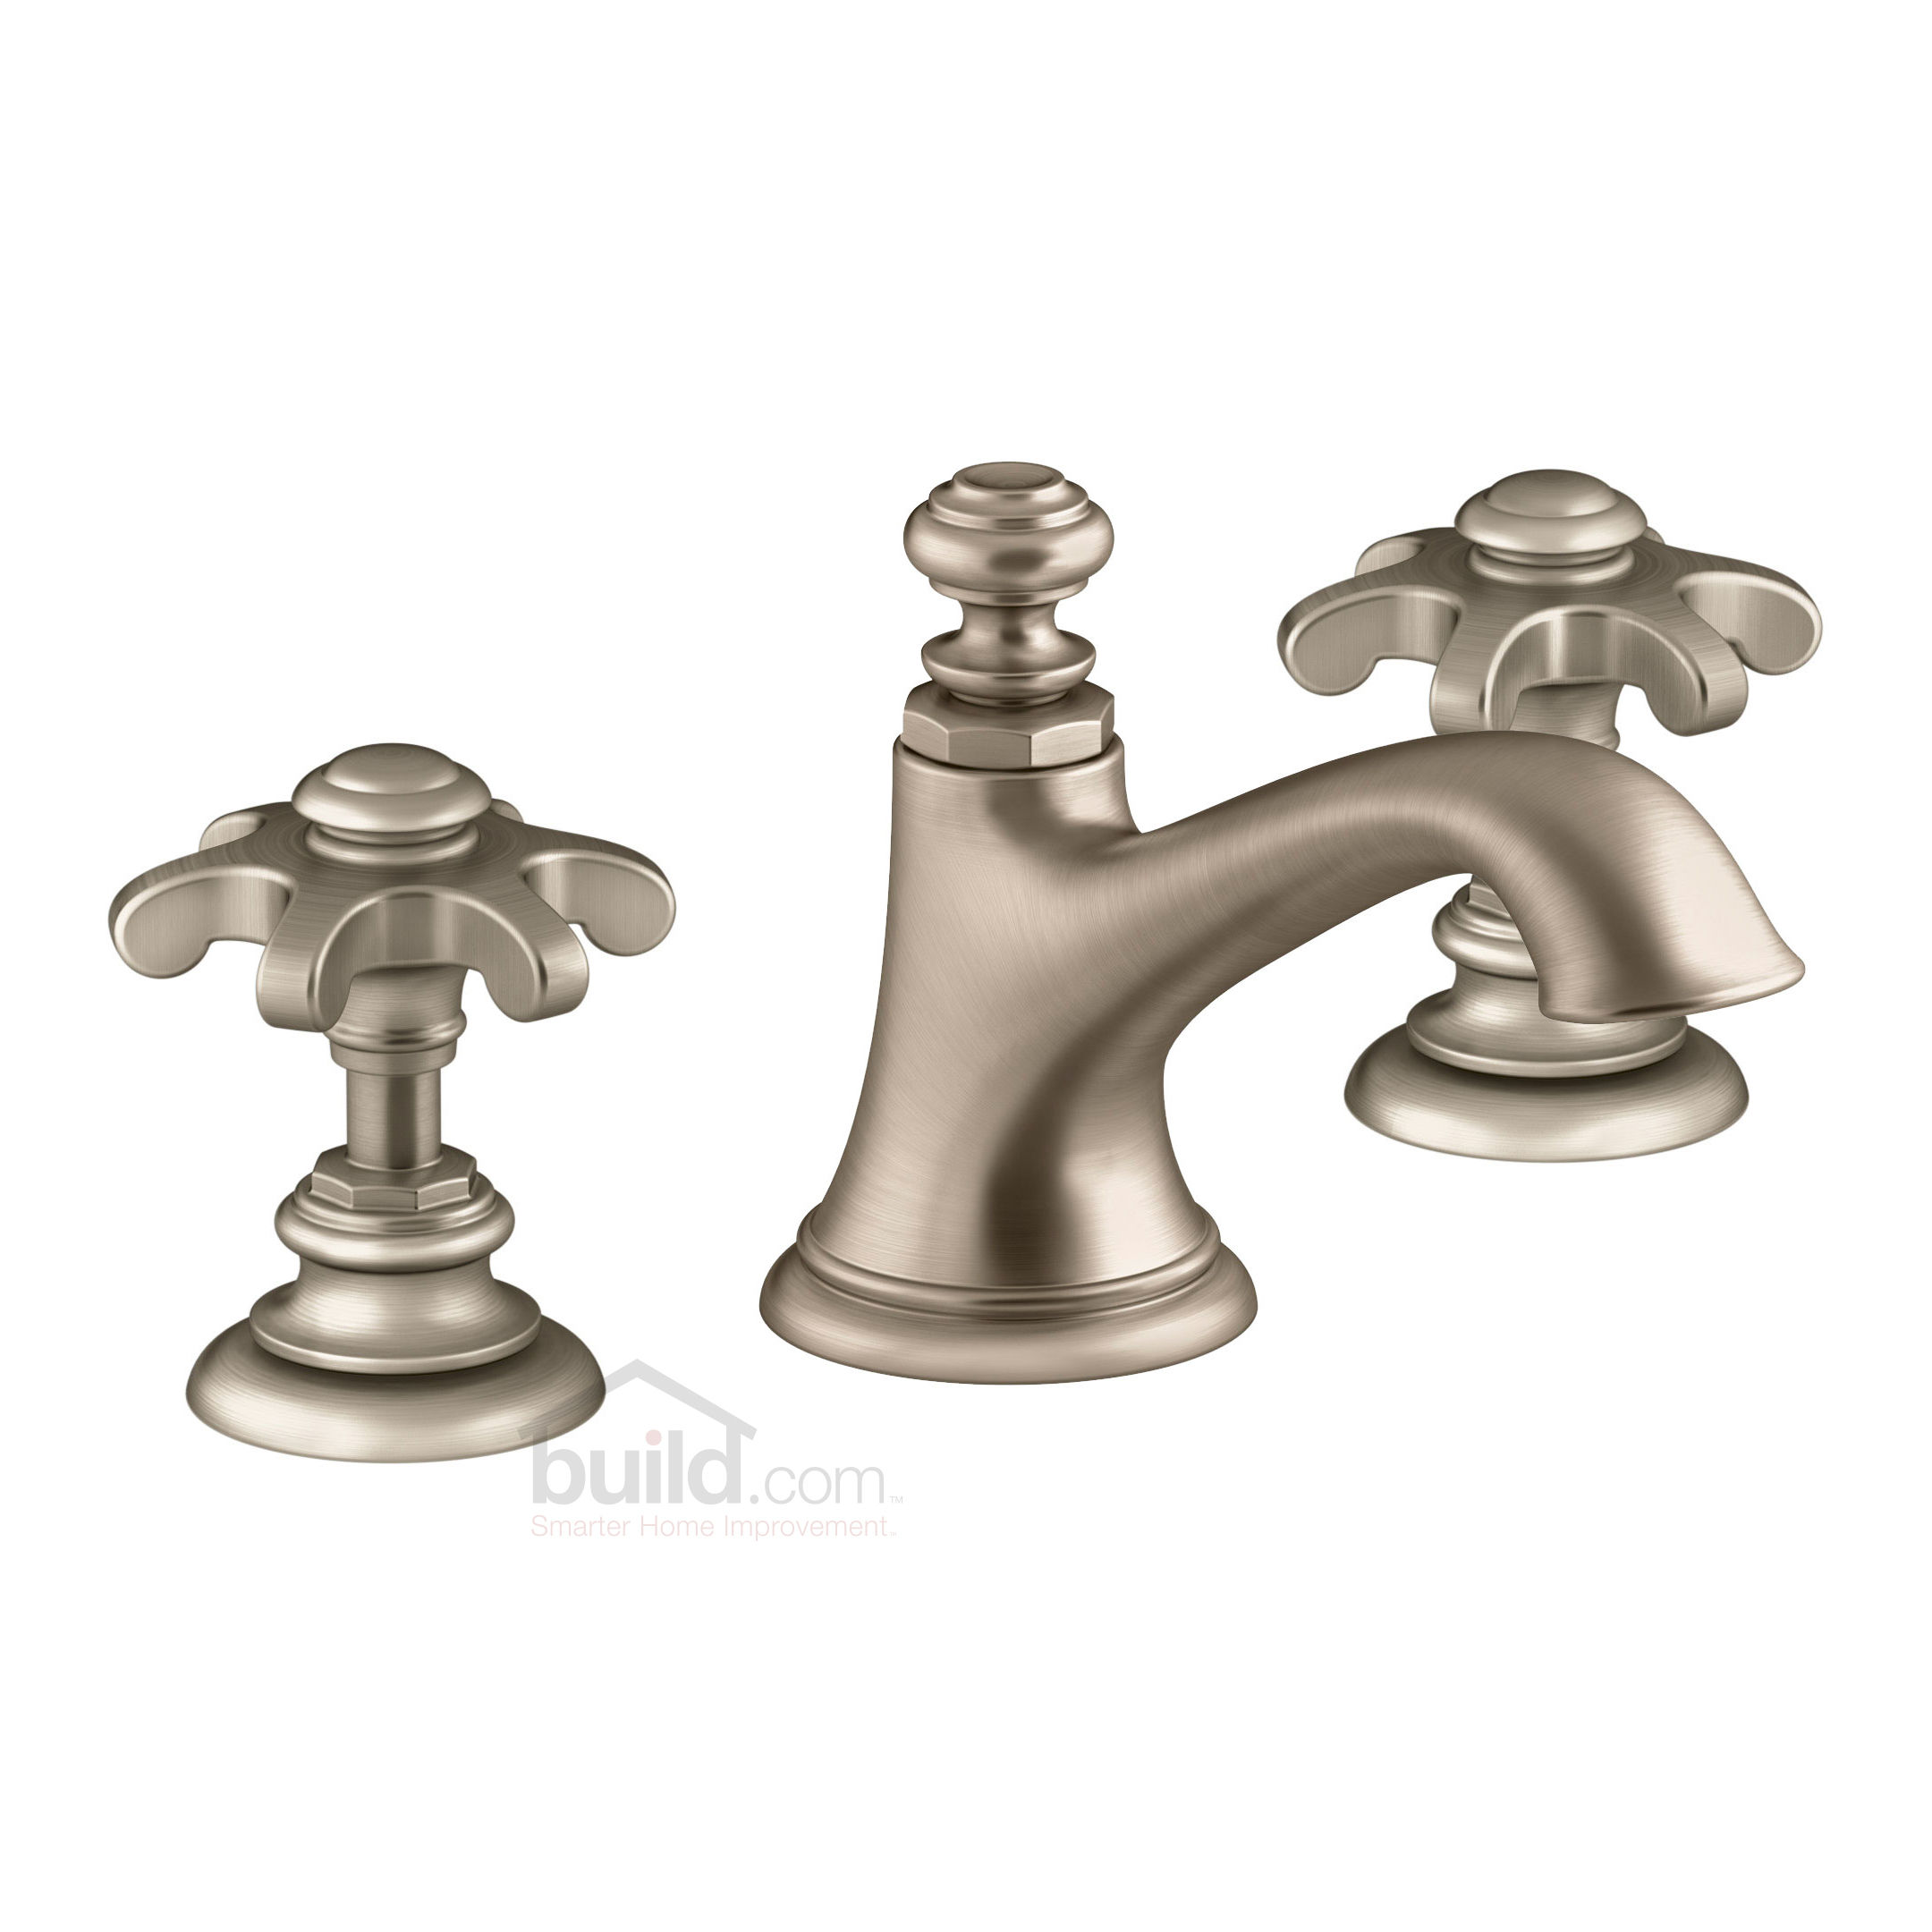 peerless handle rb venetian faucet bathroom bath brushed faucets c apex two w centerset lavatory bronze brand